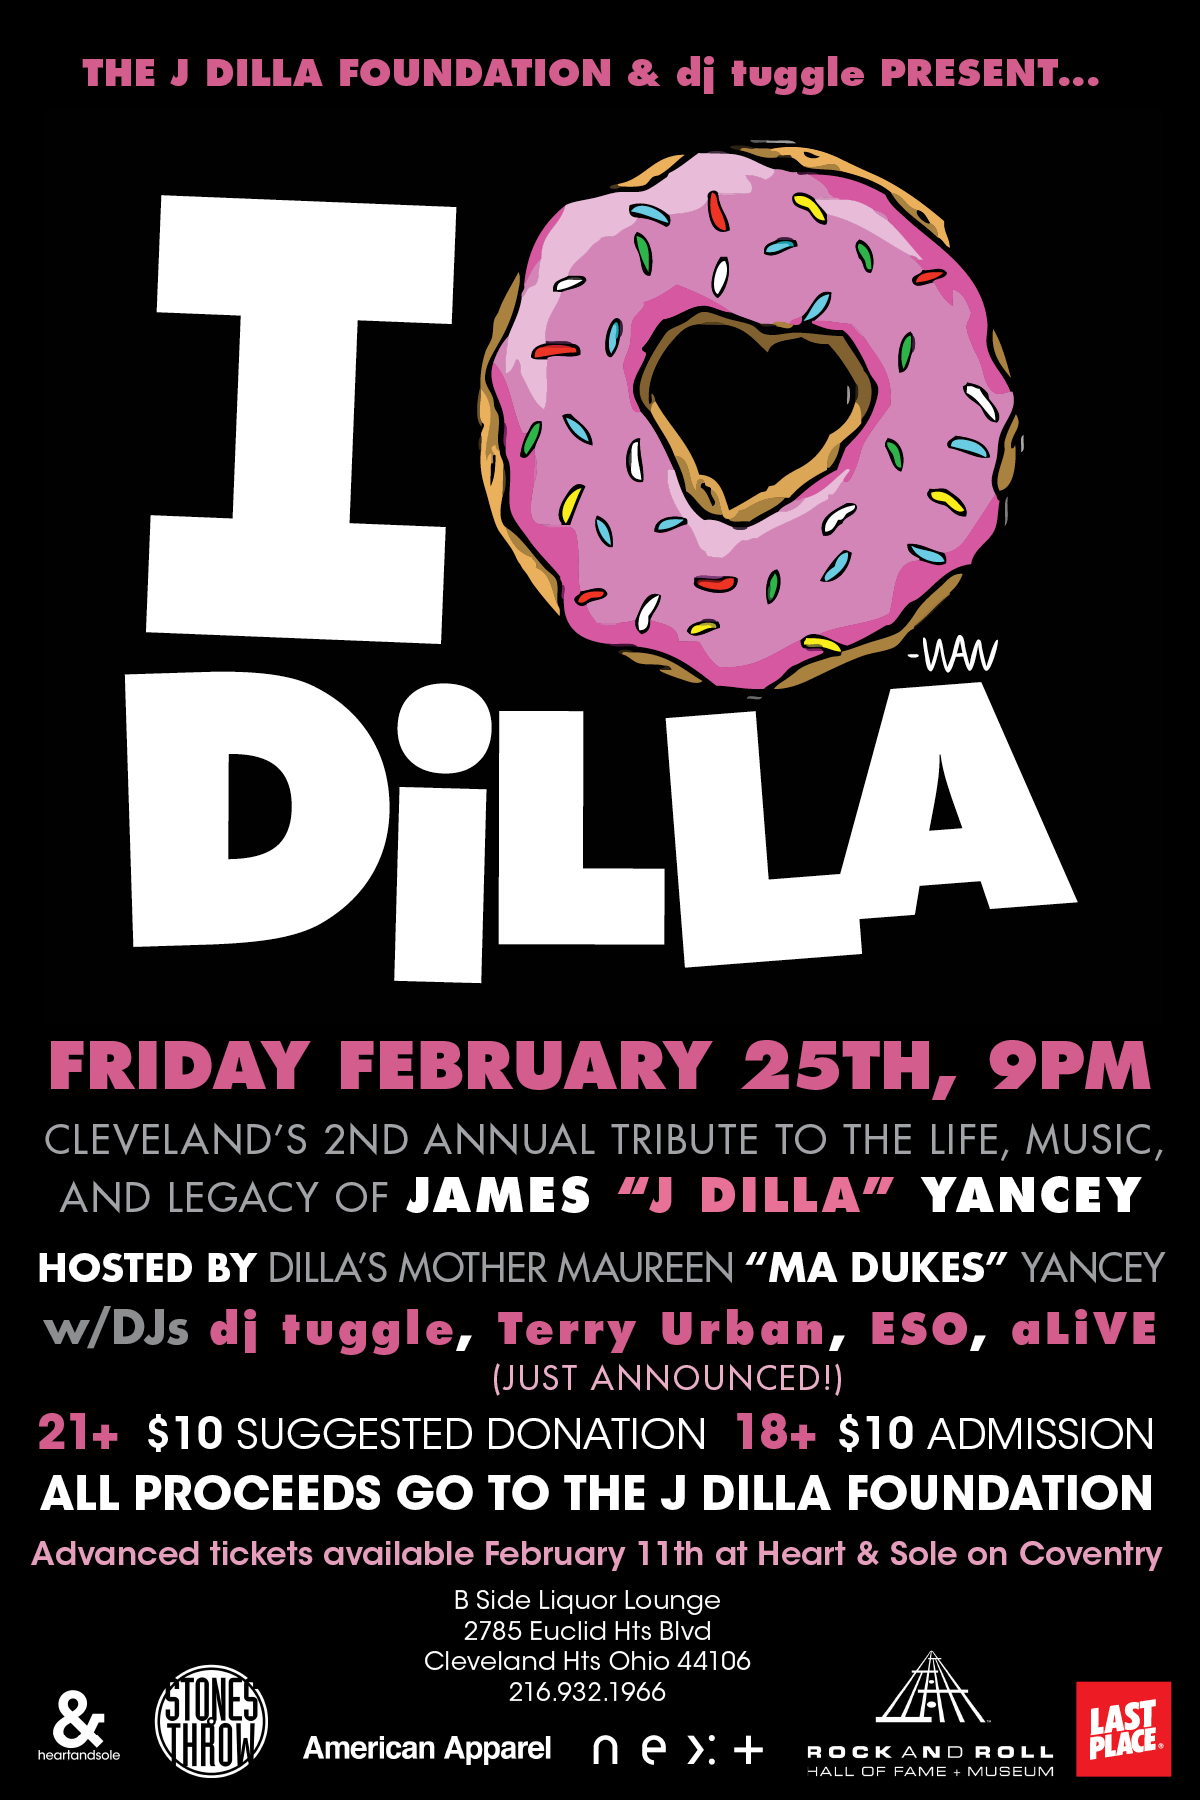 2nd Annual J Dilla Tribute & Fundraiser